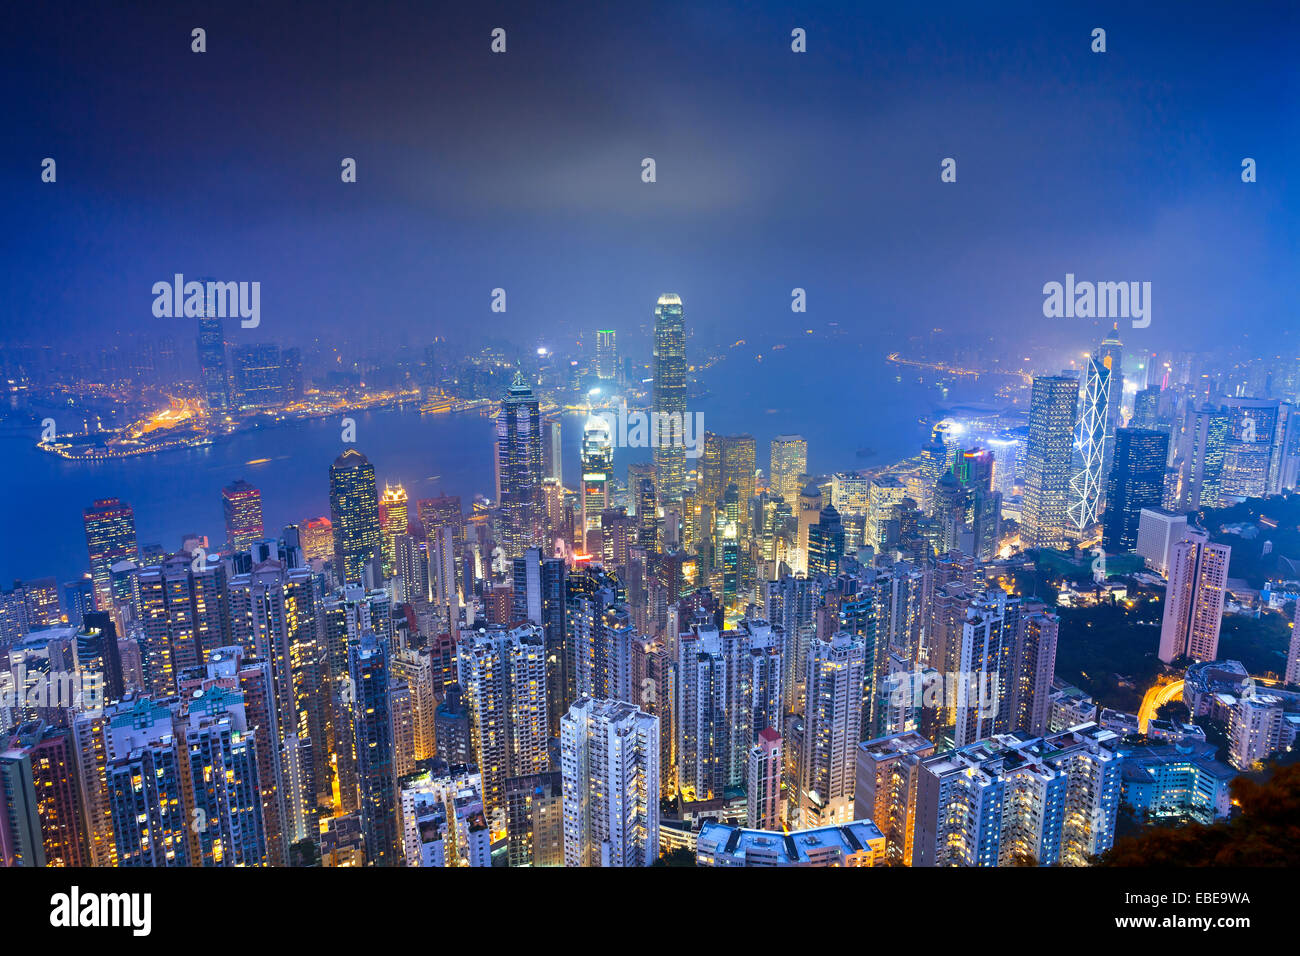 Hong Kong. Image of Hong Kong with many skyscrapers during twilight blue hour. Stock Photo